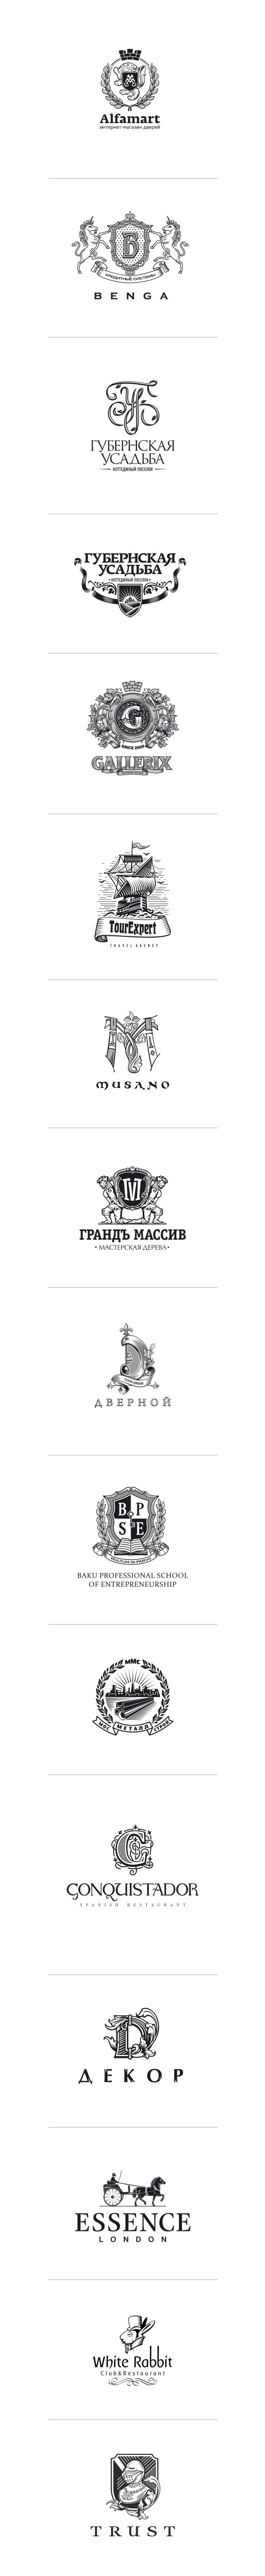 Logos in heraldic style by Alexey Markin